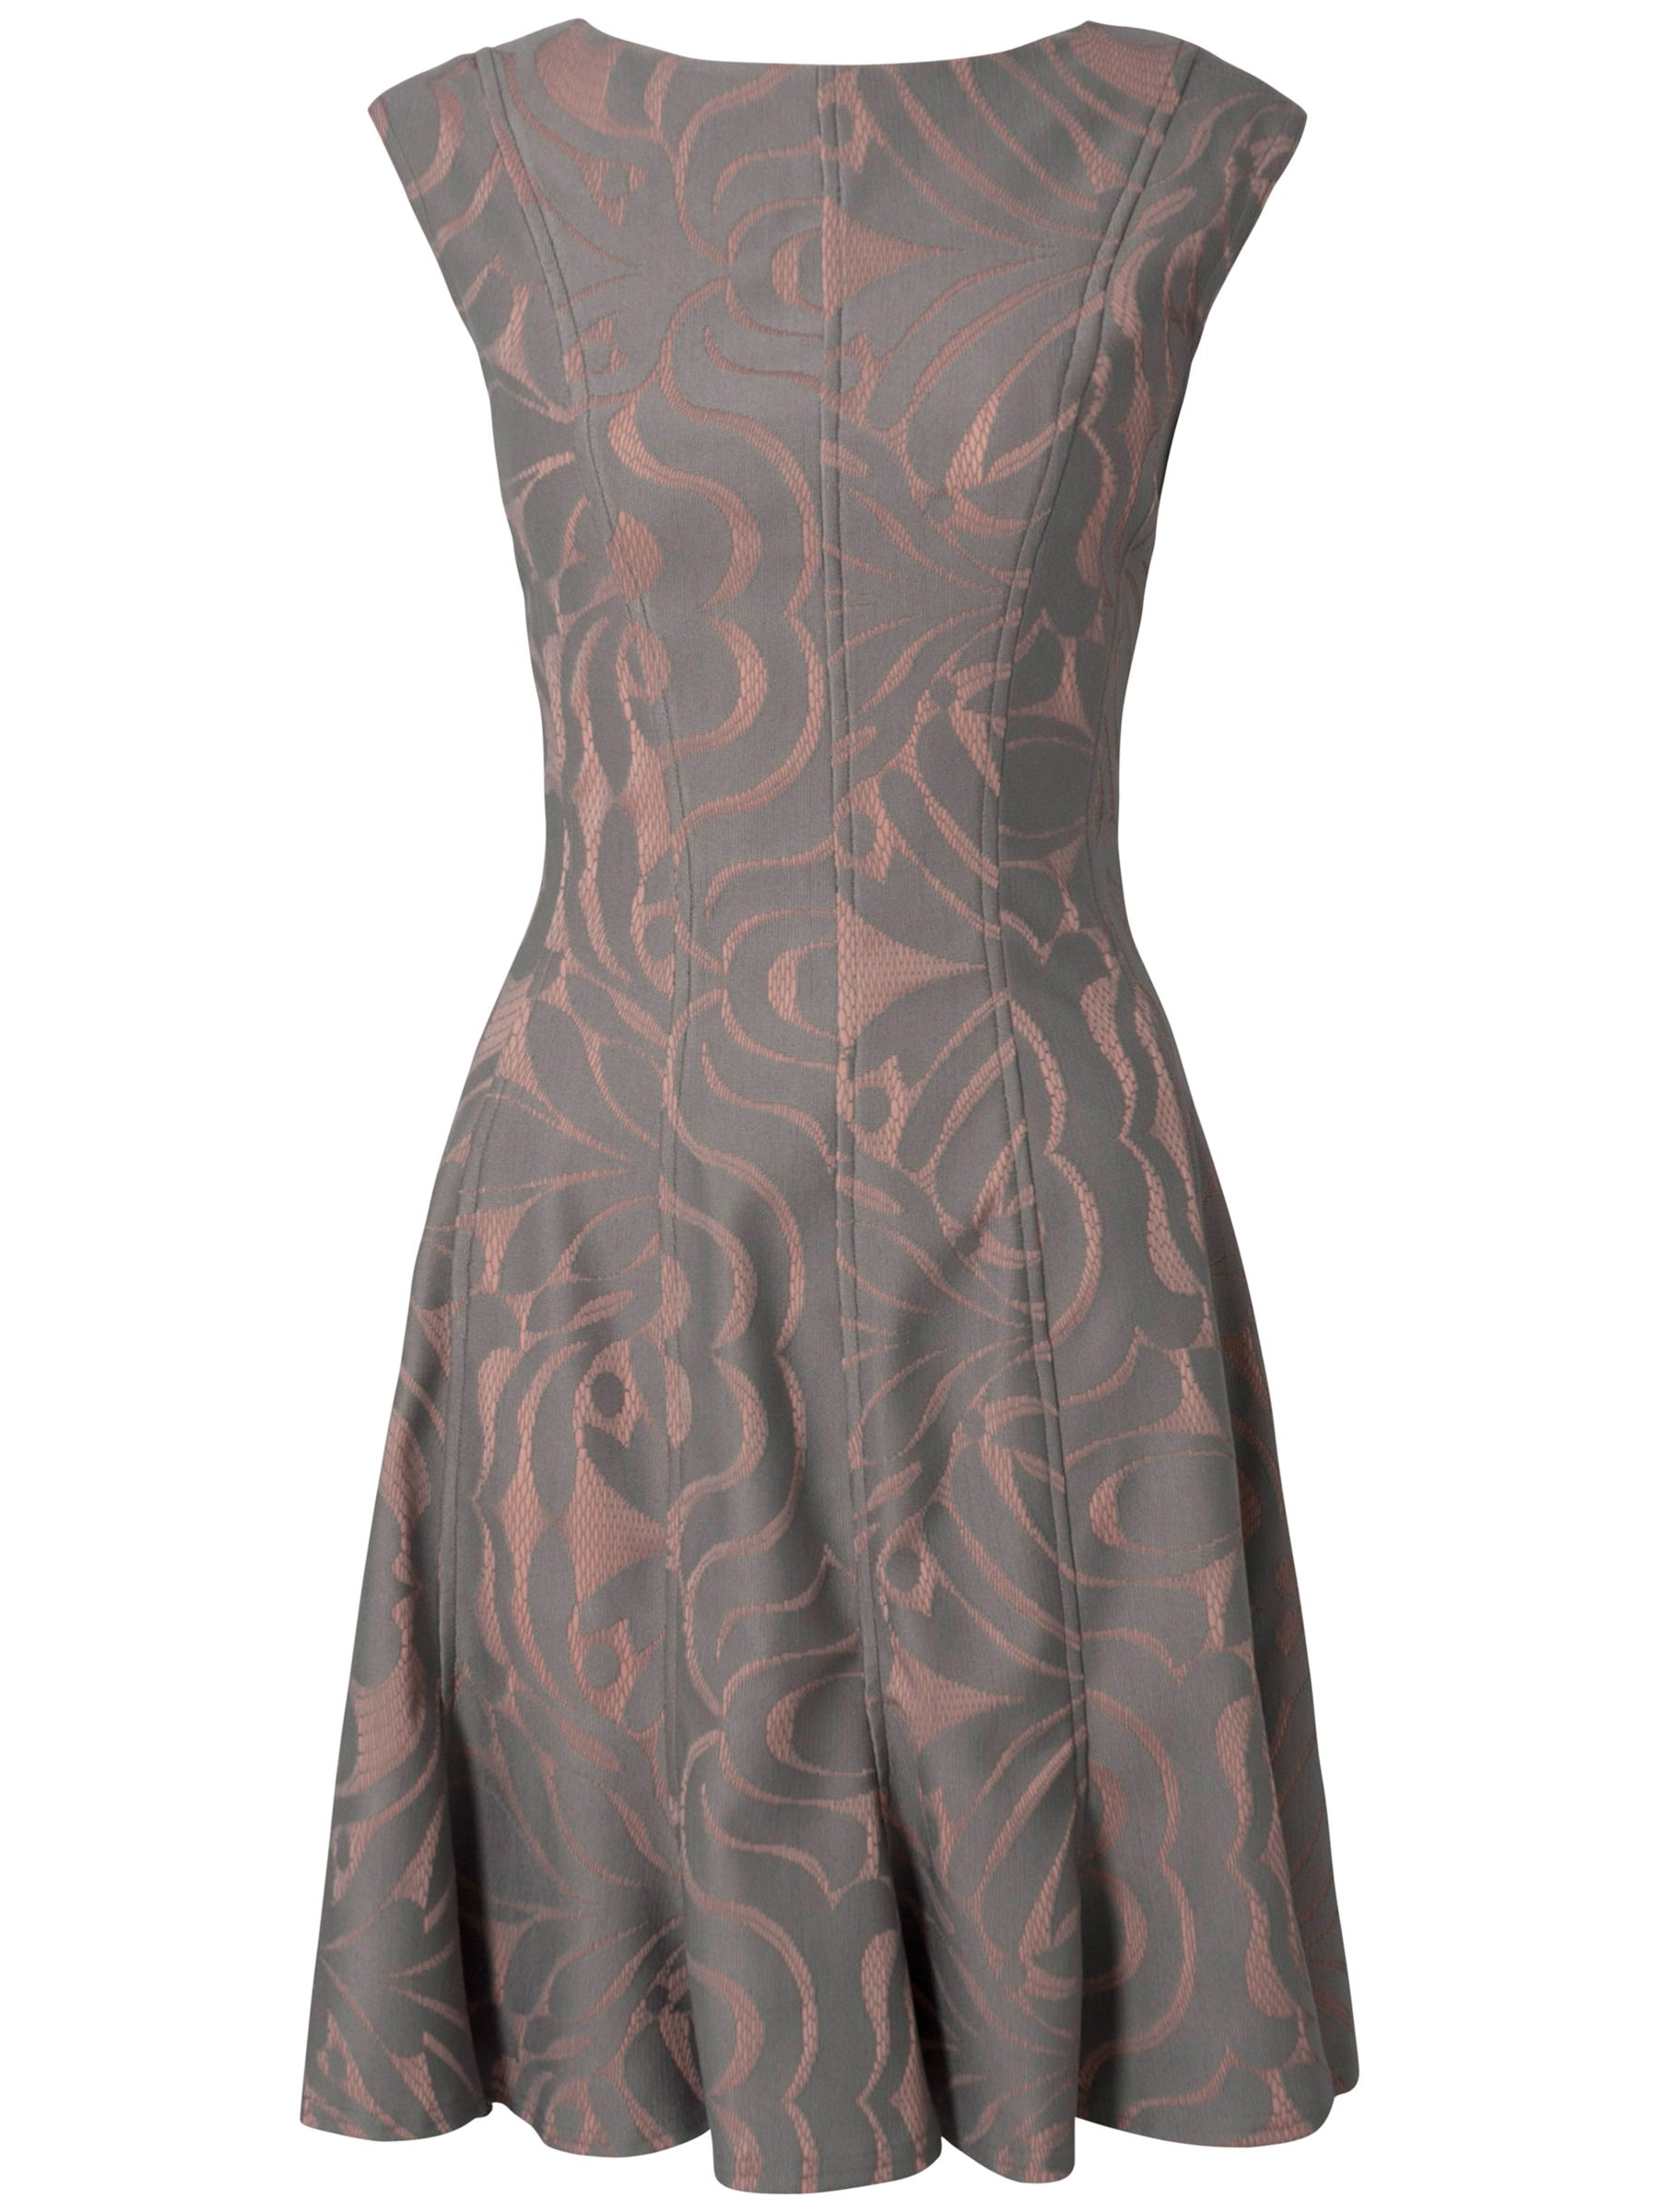 almari bonded lace panel floral dress grey, almari, bonded, lace, panel, floral, dress, grey, 14 12 10 8, clearance, womenswear offers, womens dresses offers, women, inactive womenswear, new reductions, womens dresses, special offers, 1415123